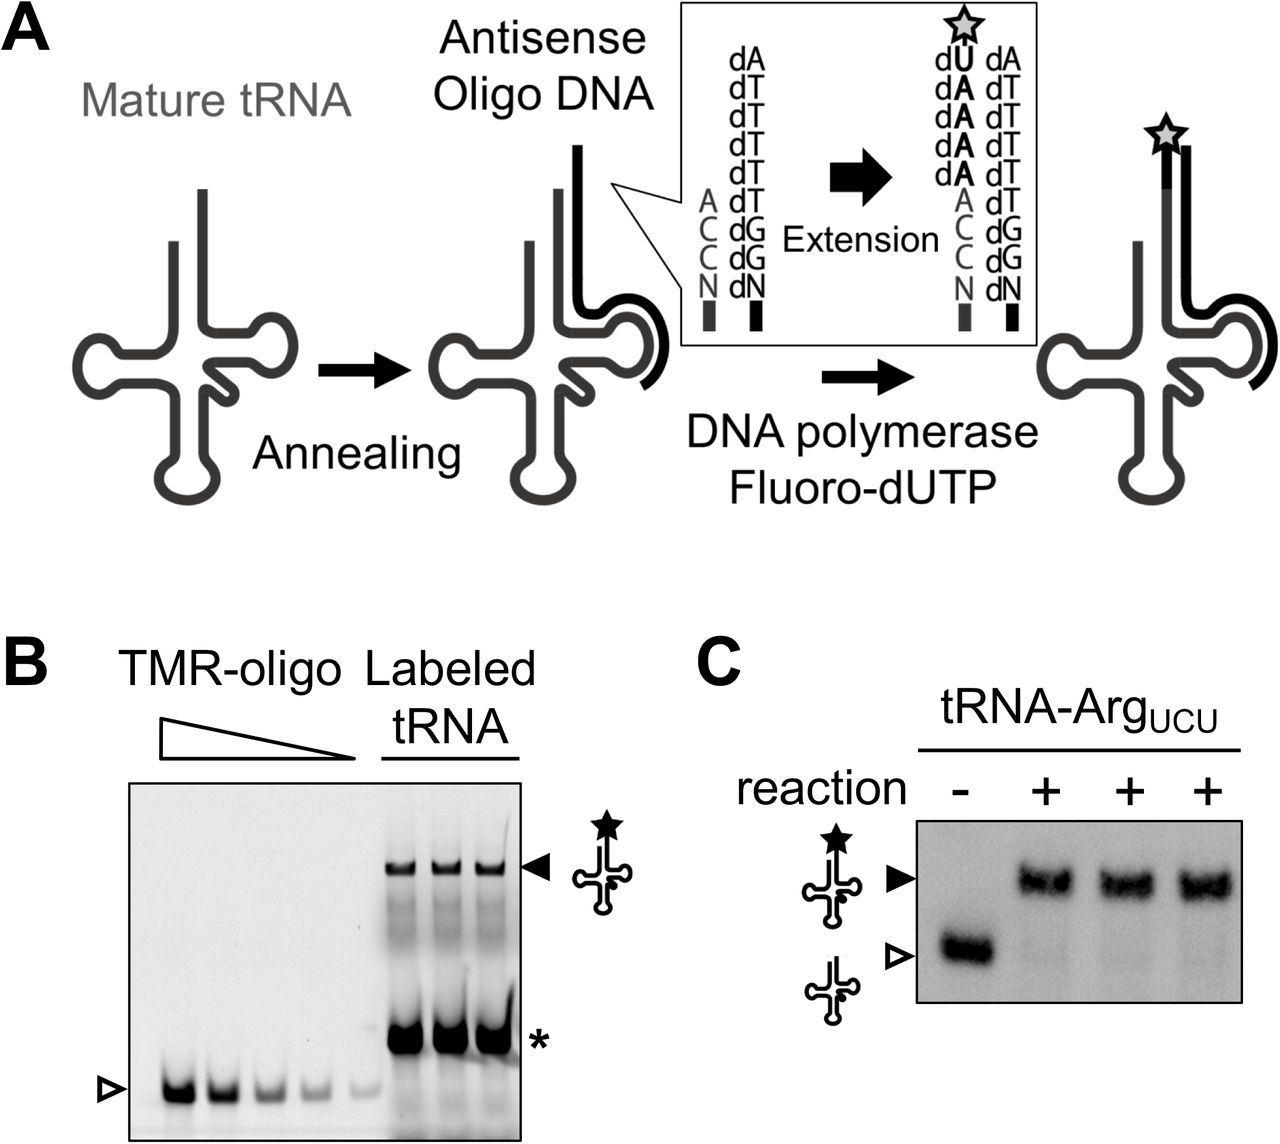 "tRNA quantification using OTTER ( A ) Schematic drawing of tRNA fluorescence labeling reaction in OTTER. A target tRNA is first hybridized with a specifically-designed antisense oligo DNA with the 5'-extension of dAdTdTdTdT (Type 1 oligo DNA). The overhang in the tRNA/DNA hybrid was filled by Klenow fragment (3'-5' exo − ) with <t>dATP</t> and fluorescence-labeled dUTP (such as <t>TMR-dUTP;</t> marked by star) as substrates. ( B ) An example for tRNA-Arg UCU quantification. Typical reactions of OTTER for tRNA-Arg UCU were analyzed by urea-PAGE and scanned with a fluorescence scanner. The fluorescence-labeled tRNA-Arg UCU (closed triangle) as well as the fluorescence-labeled template oligo DNA by a weak reverse transcription activity of the Klenow fragment (asterisk) were detected. Since the 3' end of the oligo DNA falls on the TΨC region rather conserved even among different tRNA species, unrelated tRNAs also acted as templates to produce the strong signal. Three replicates of the reaction were analyzed. The amounts of the standard TMR-oligo DNA on the gel (open triangle) were 0.500, 0.250, 0.100, 0.050, and 0.020 pmol/lane. ( C ) The three OTTER reaction products for tRNA-Arg UCU shown in ( B ) (""+"" lanes) were subjected to Northern blotting with a reaction without the template oligo DNA (""−"" lane)."